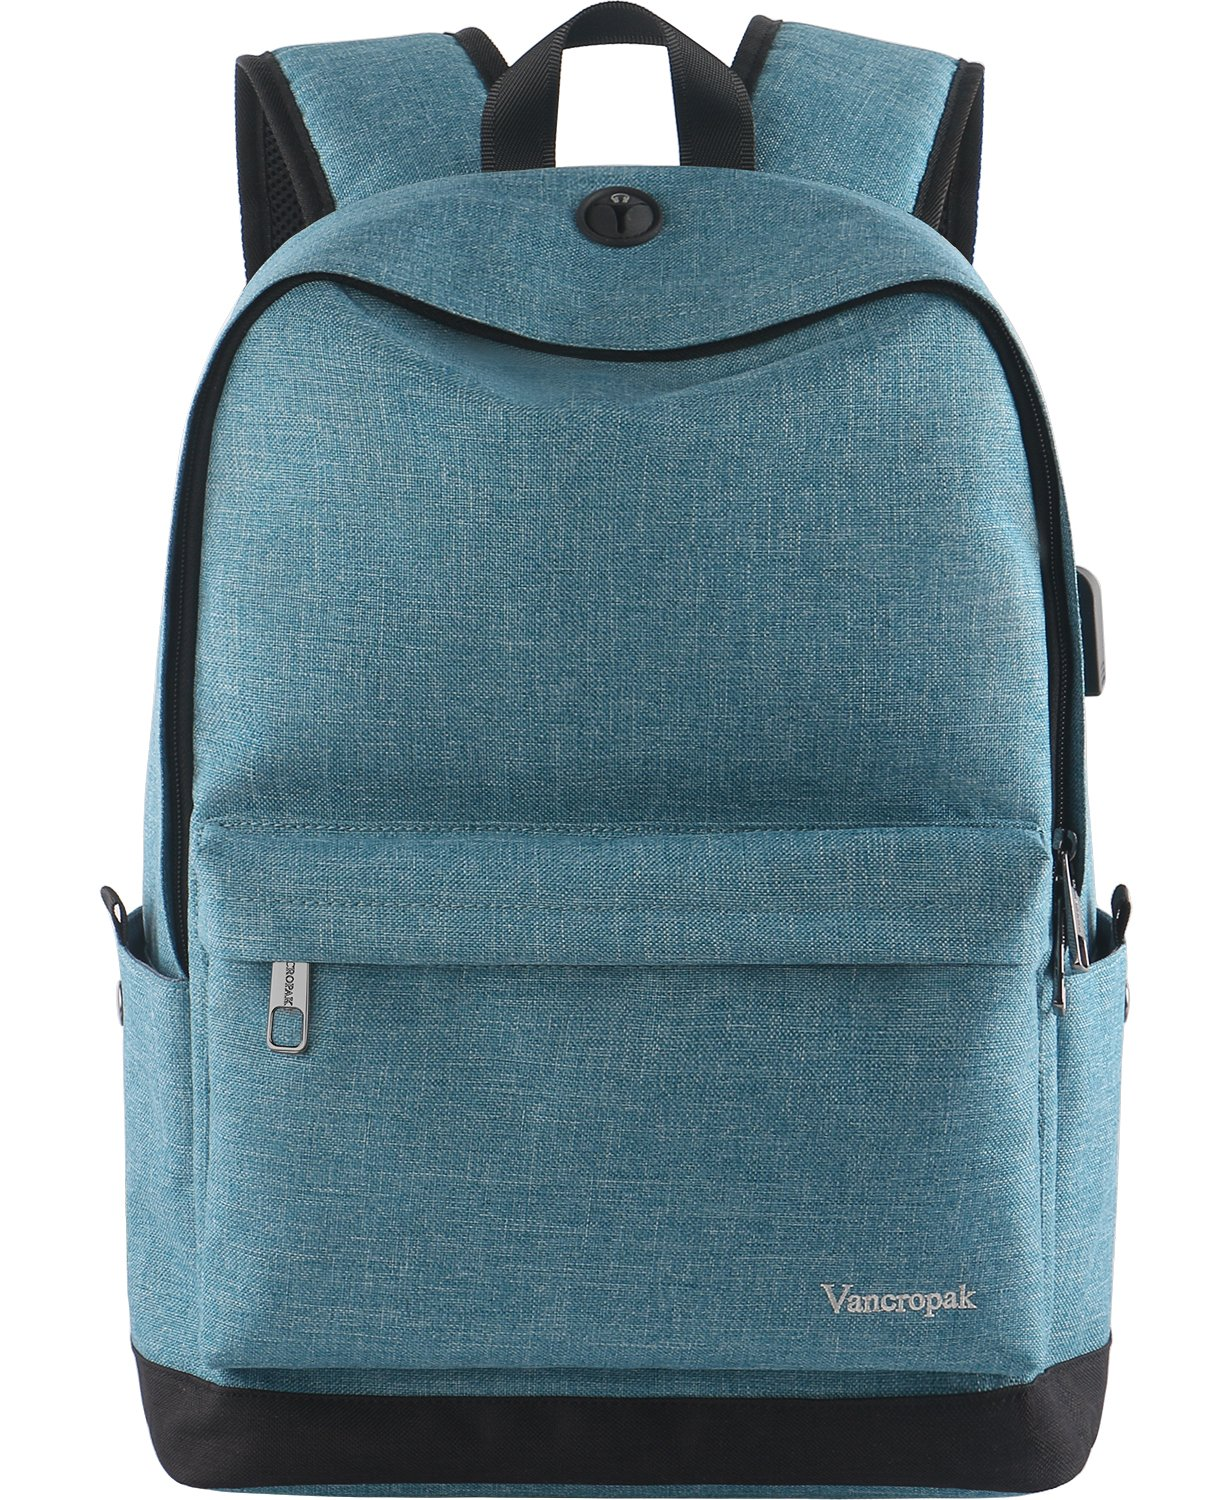 High School Backpack, Middle Student Bag with USB Port for Men Women Teen, Causel Basic Bookbag Fits 15.6 Inch Laptop/Notebook Designed for Travel Work Study - Purplish Blue by Vancropak (Image #1)